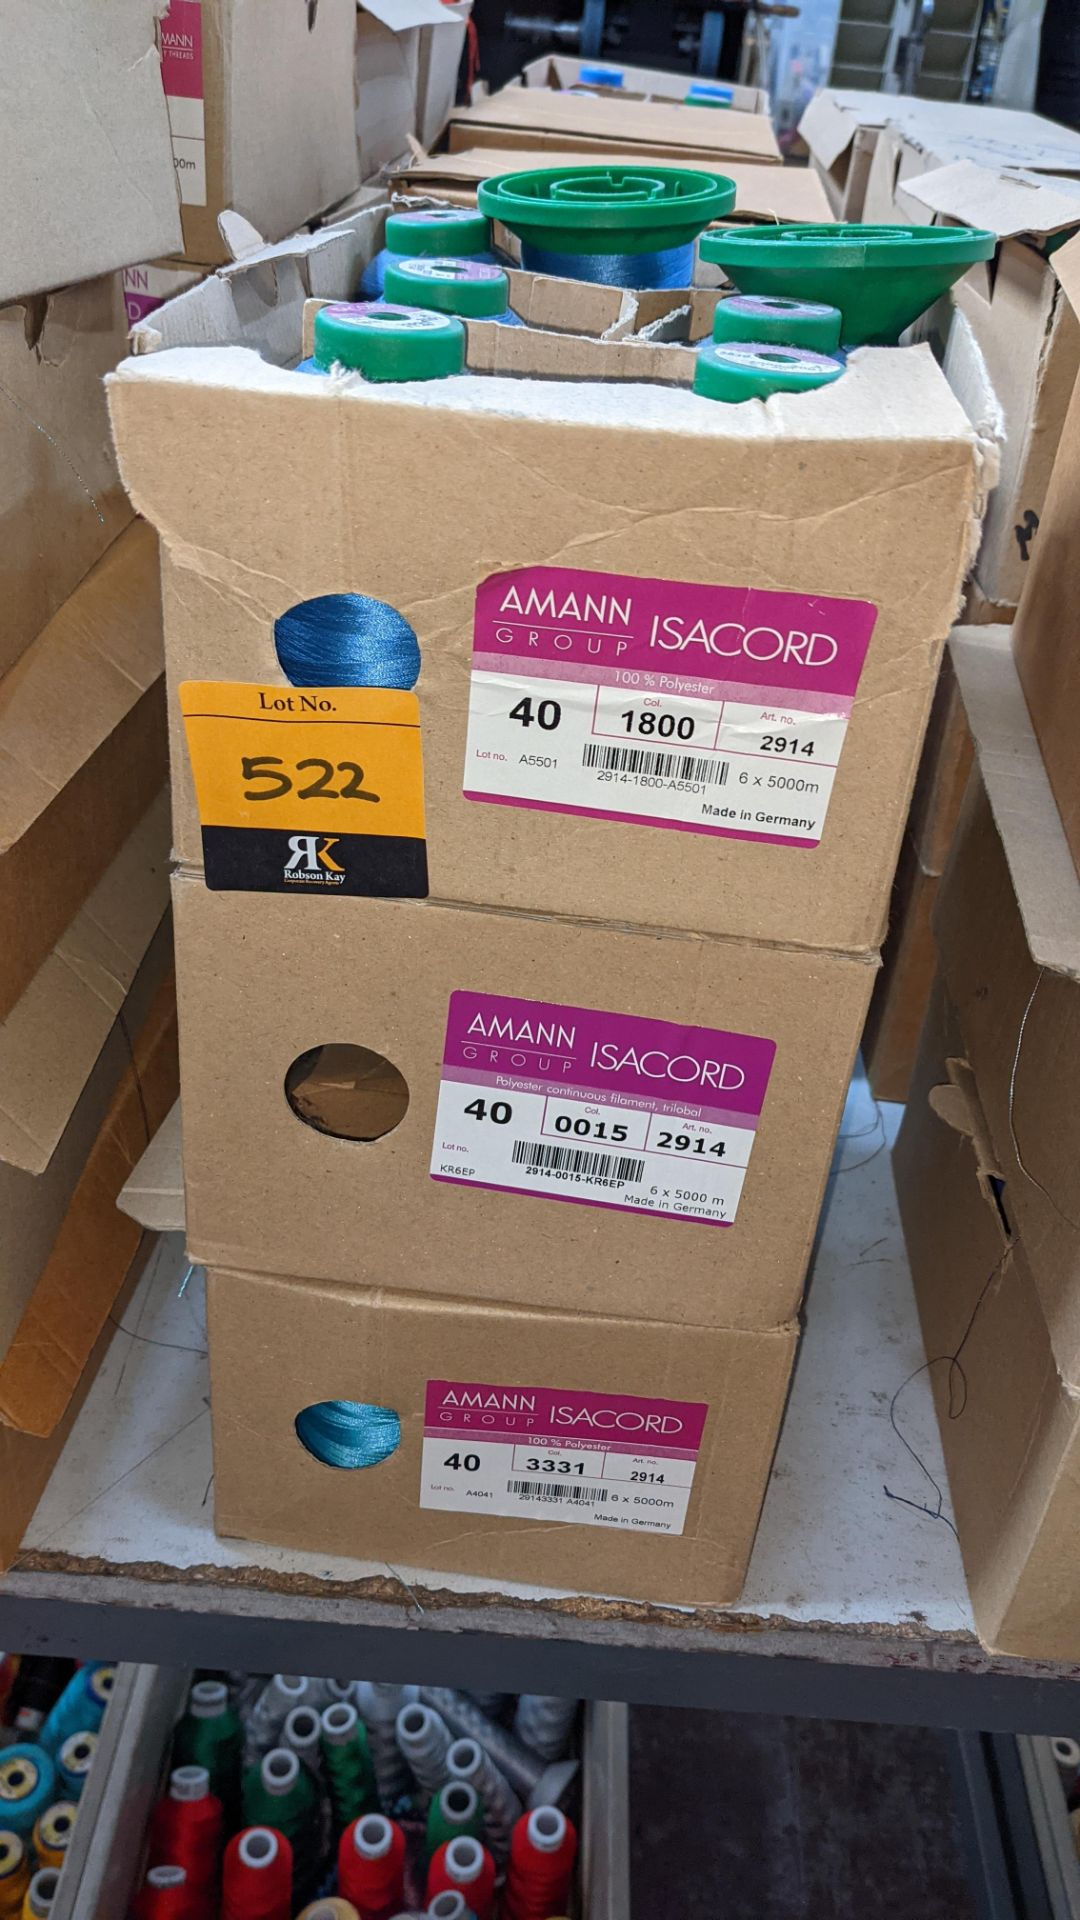 12 boxes of Ackermann Isacord (40) polyester thread - Image 3 of 10